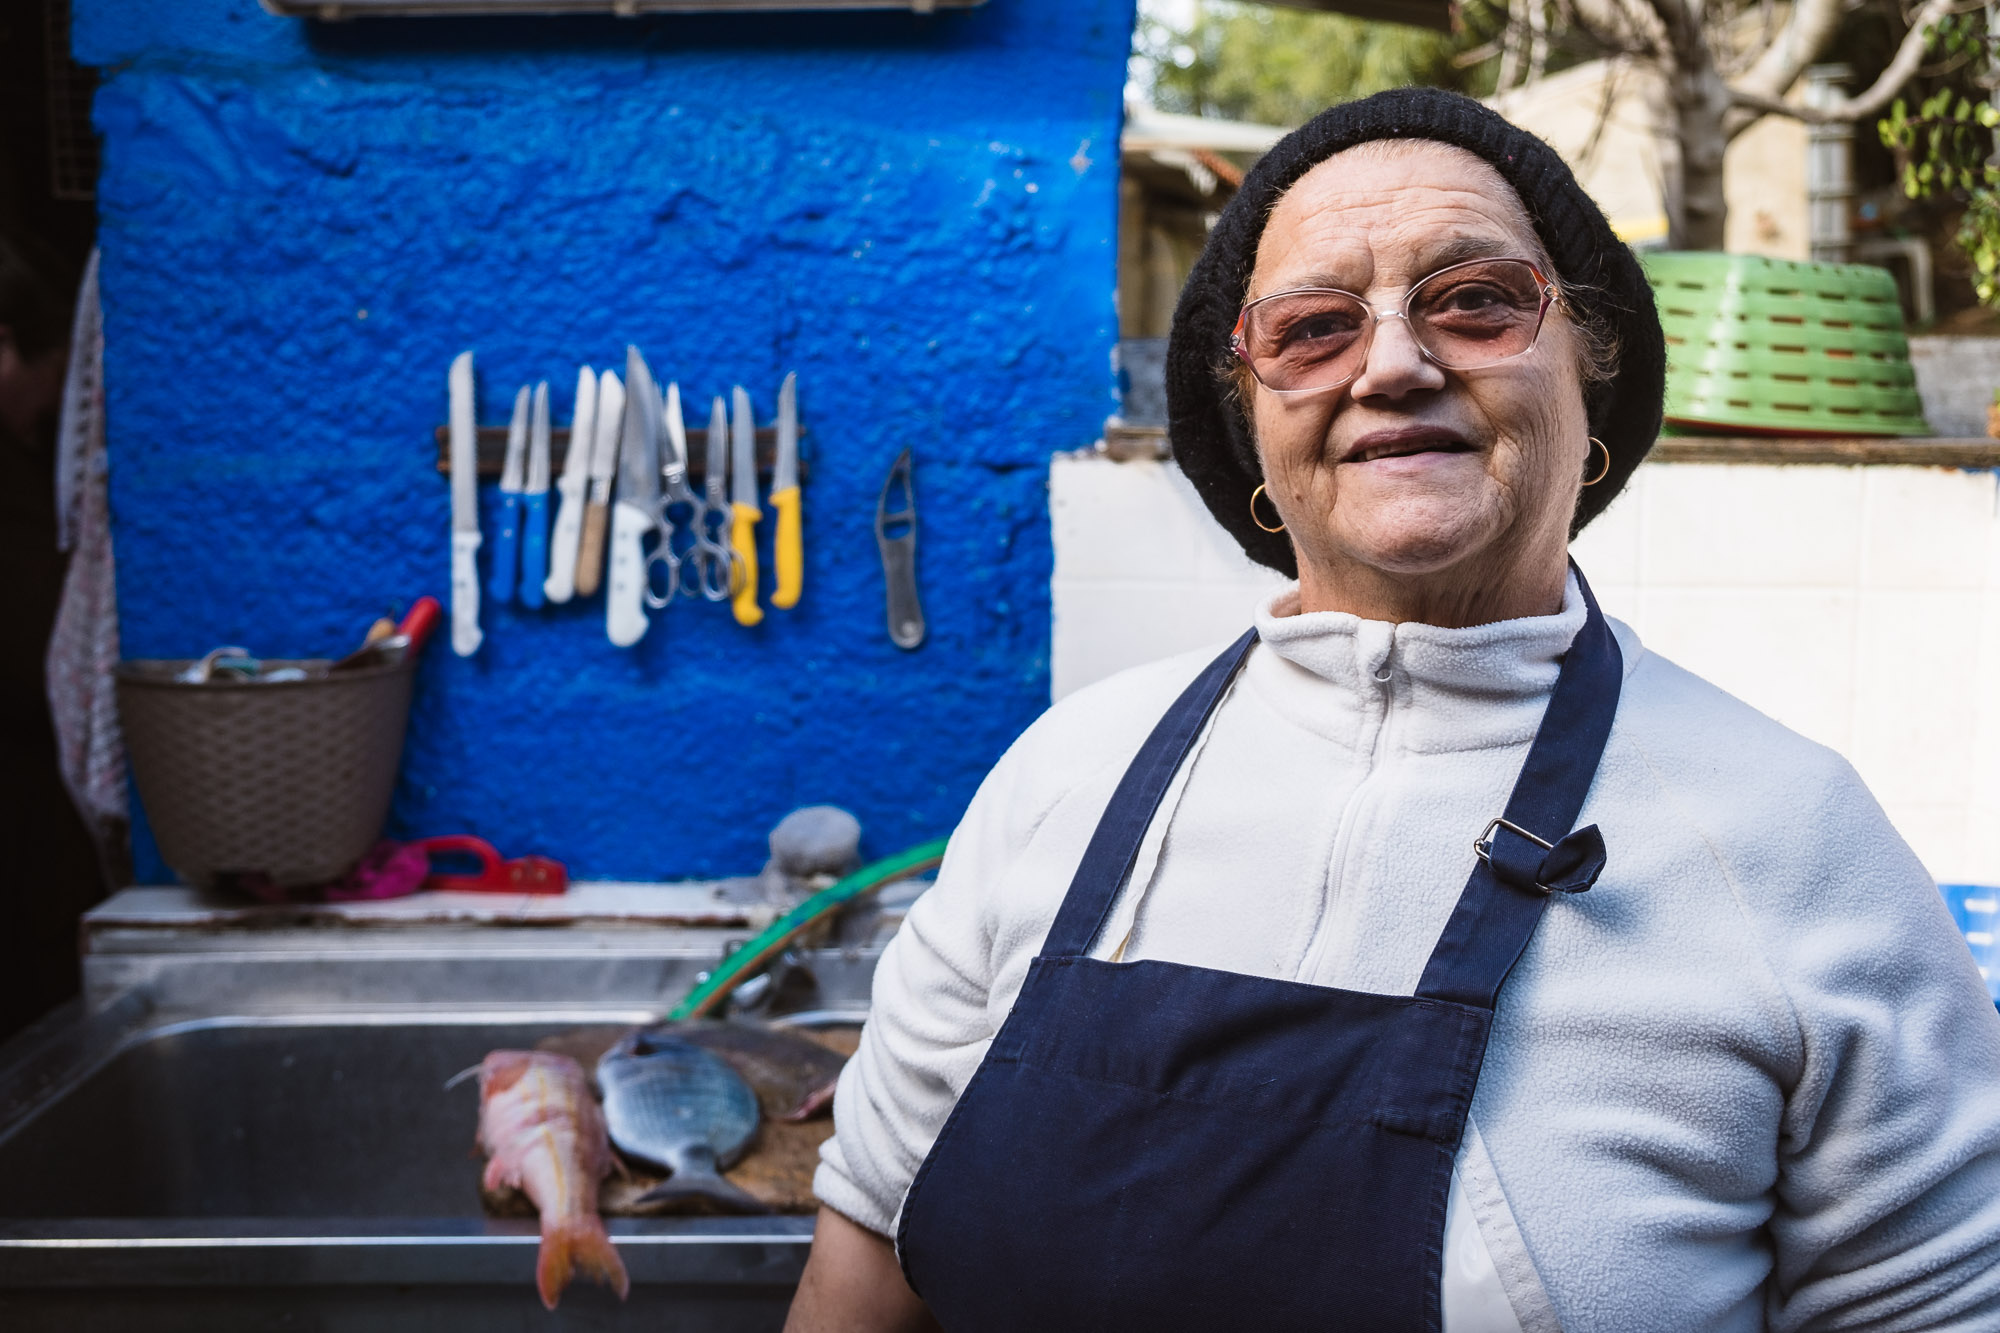 Dona Ana - owner at restaurante o Sacas, Entrada da Barca, Vila Nova de Milfontes, Alentejo, Portugal - Emanuele Siracusa Food and Travel Photographer in Portugal